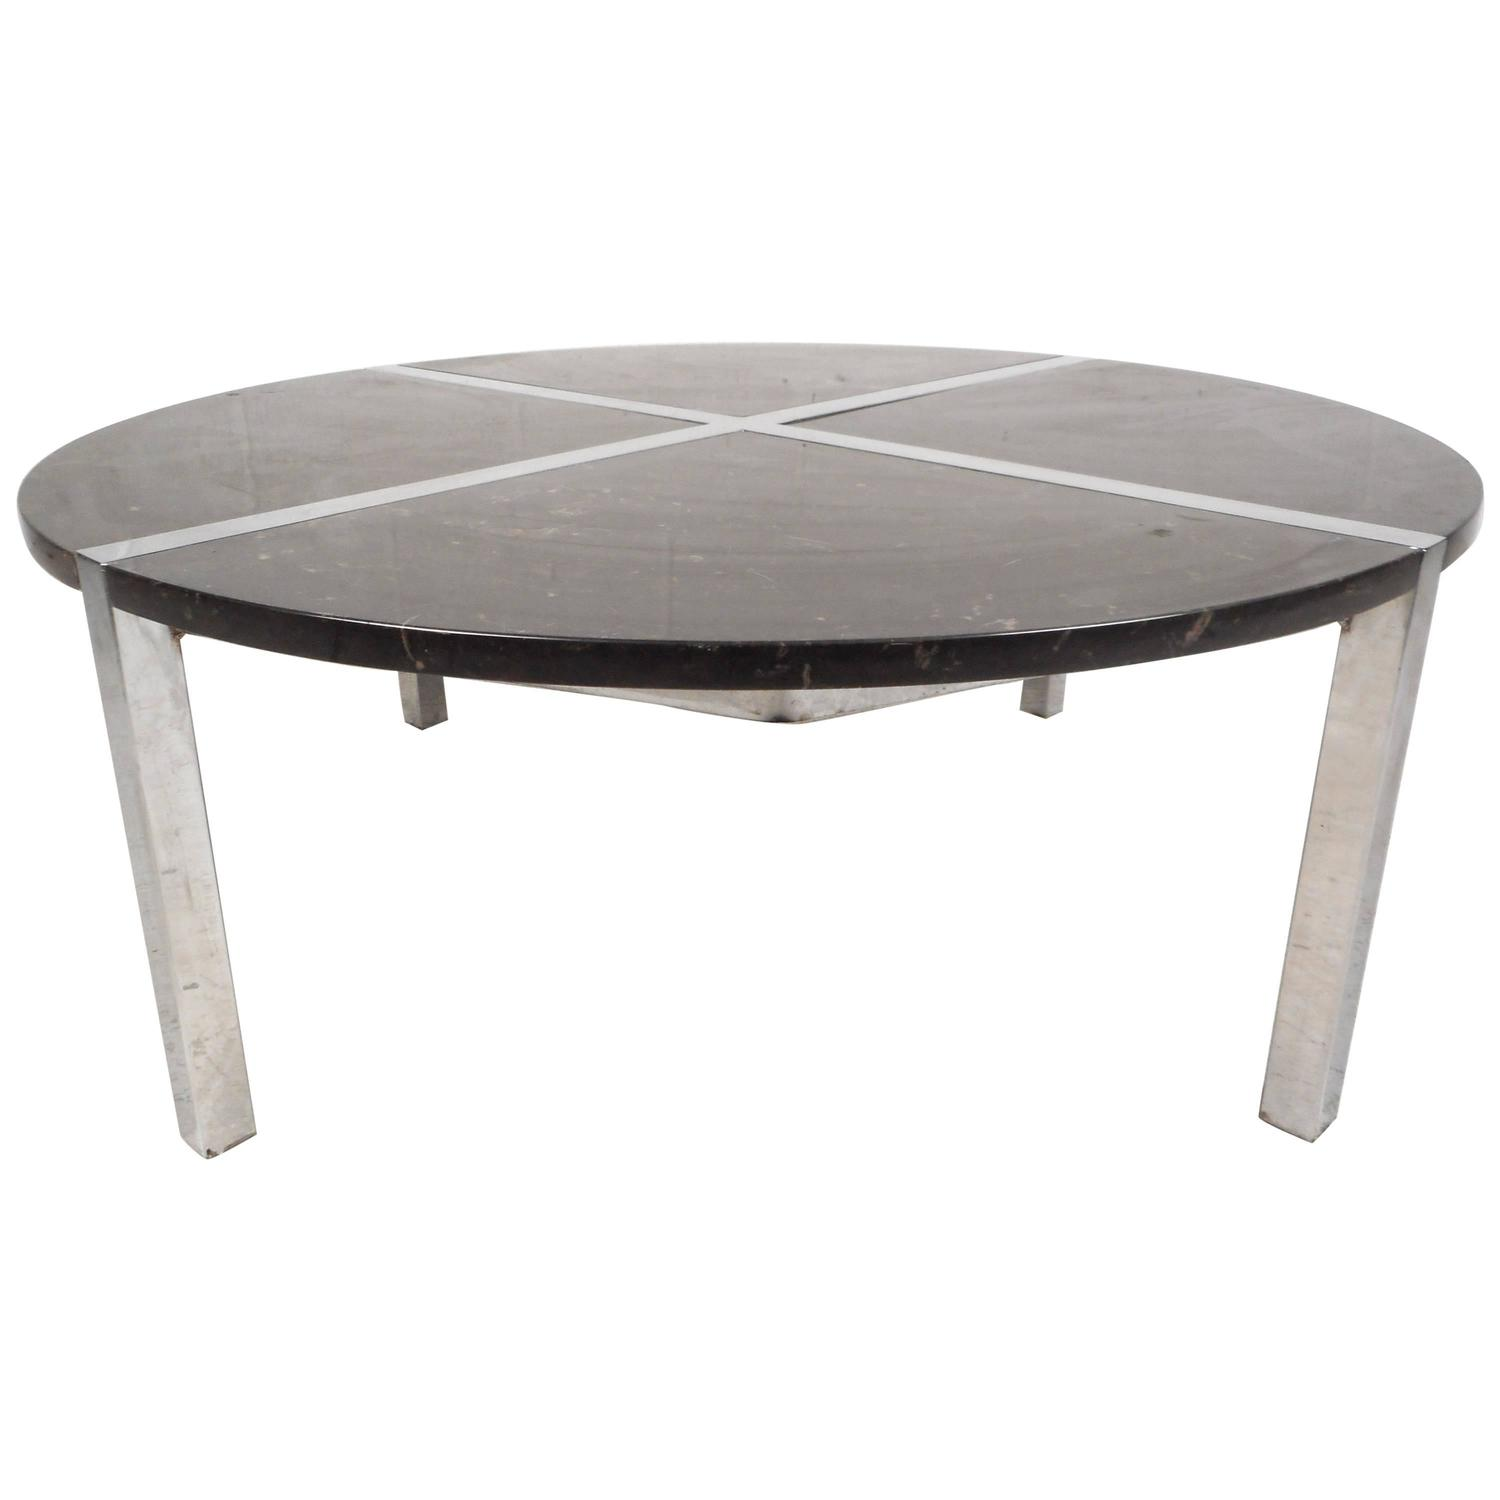 Mid Century Modern Marble Top Coffee Table: Mid-Century Modern Chrome And Marble Top Coffee Table For